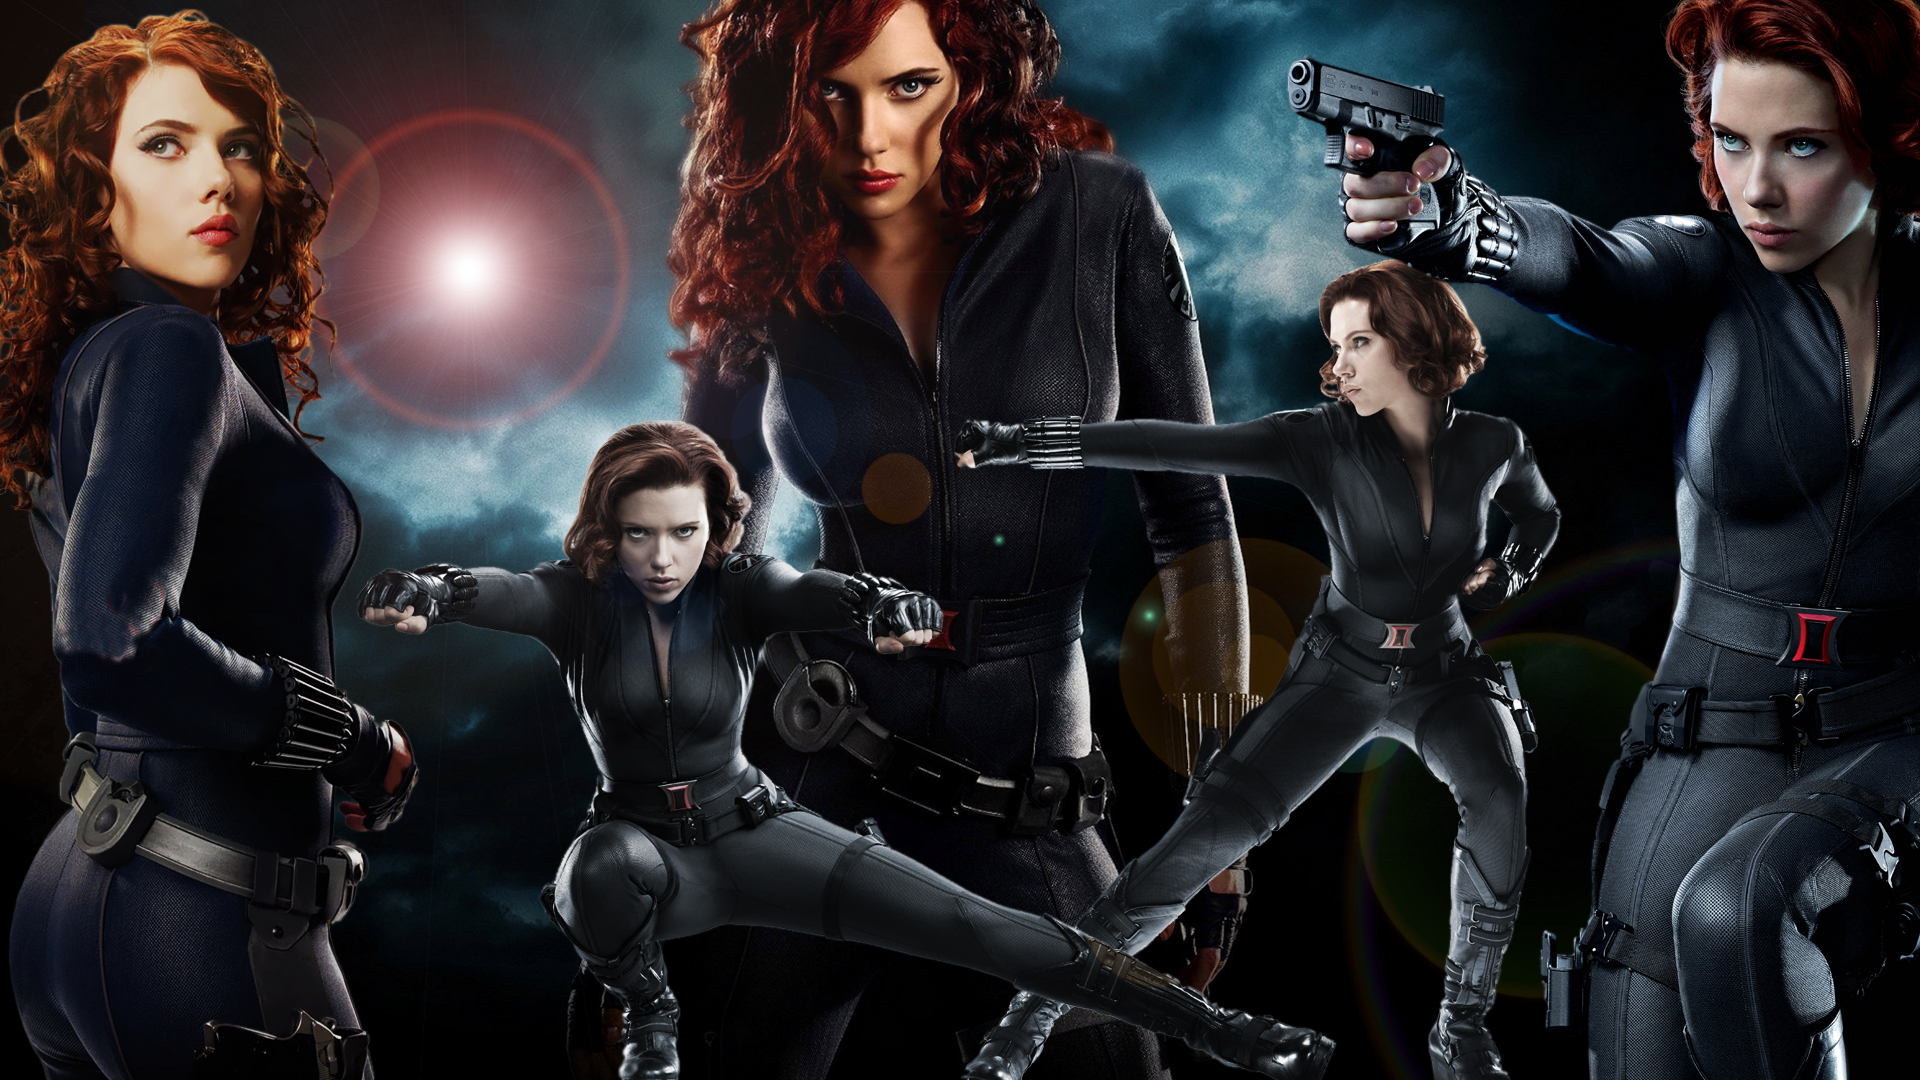 Black Widow Wallpaper by lordamrasnenharma 1920x1080